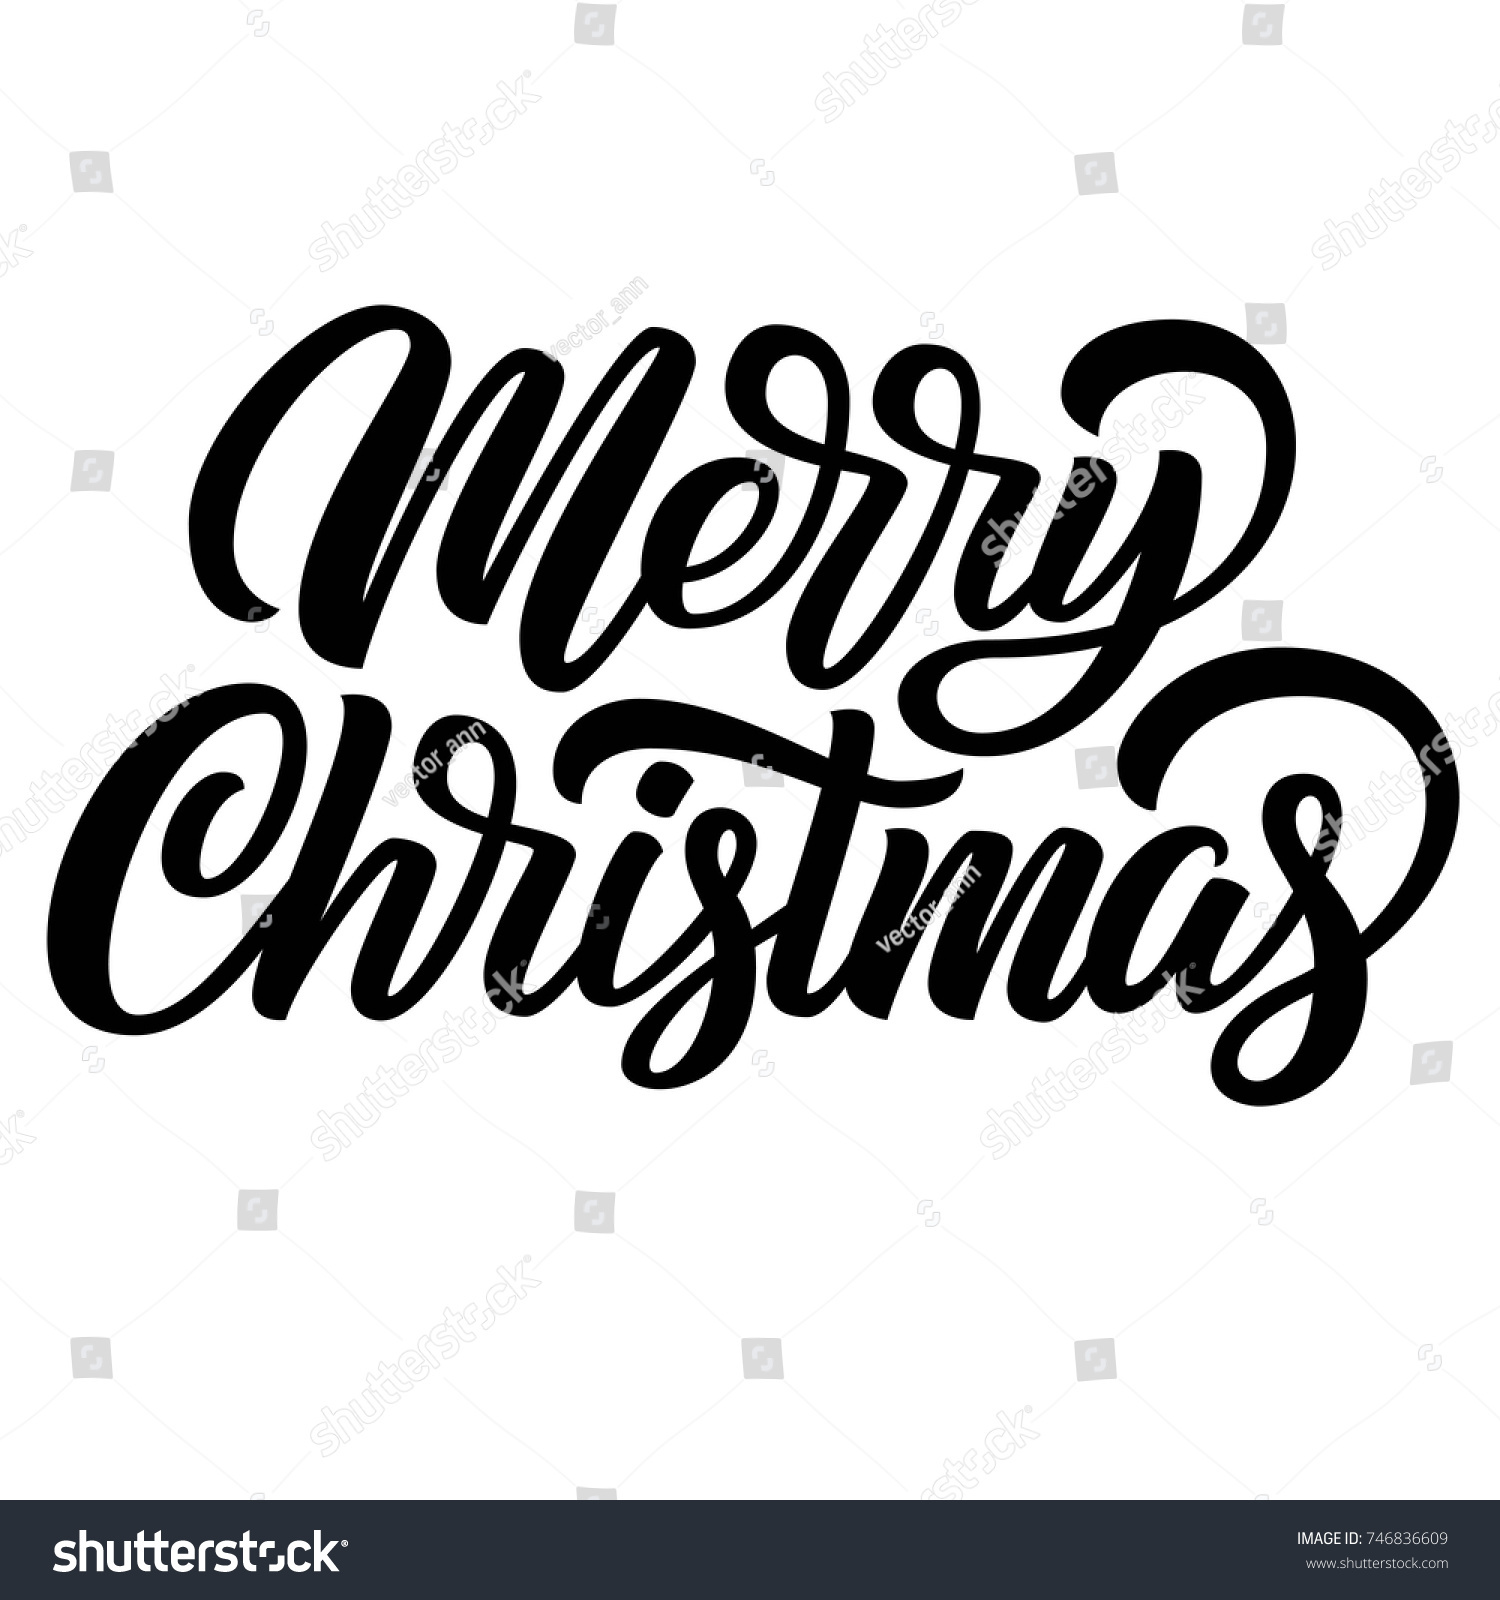 id 746836609 - Merry Christmas Black And White